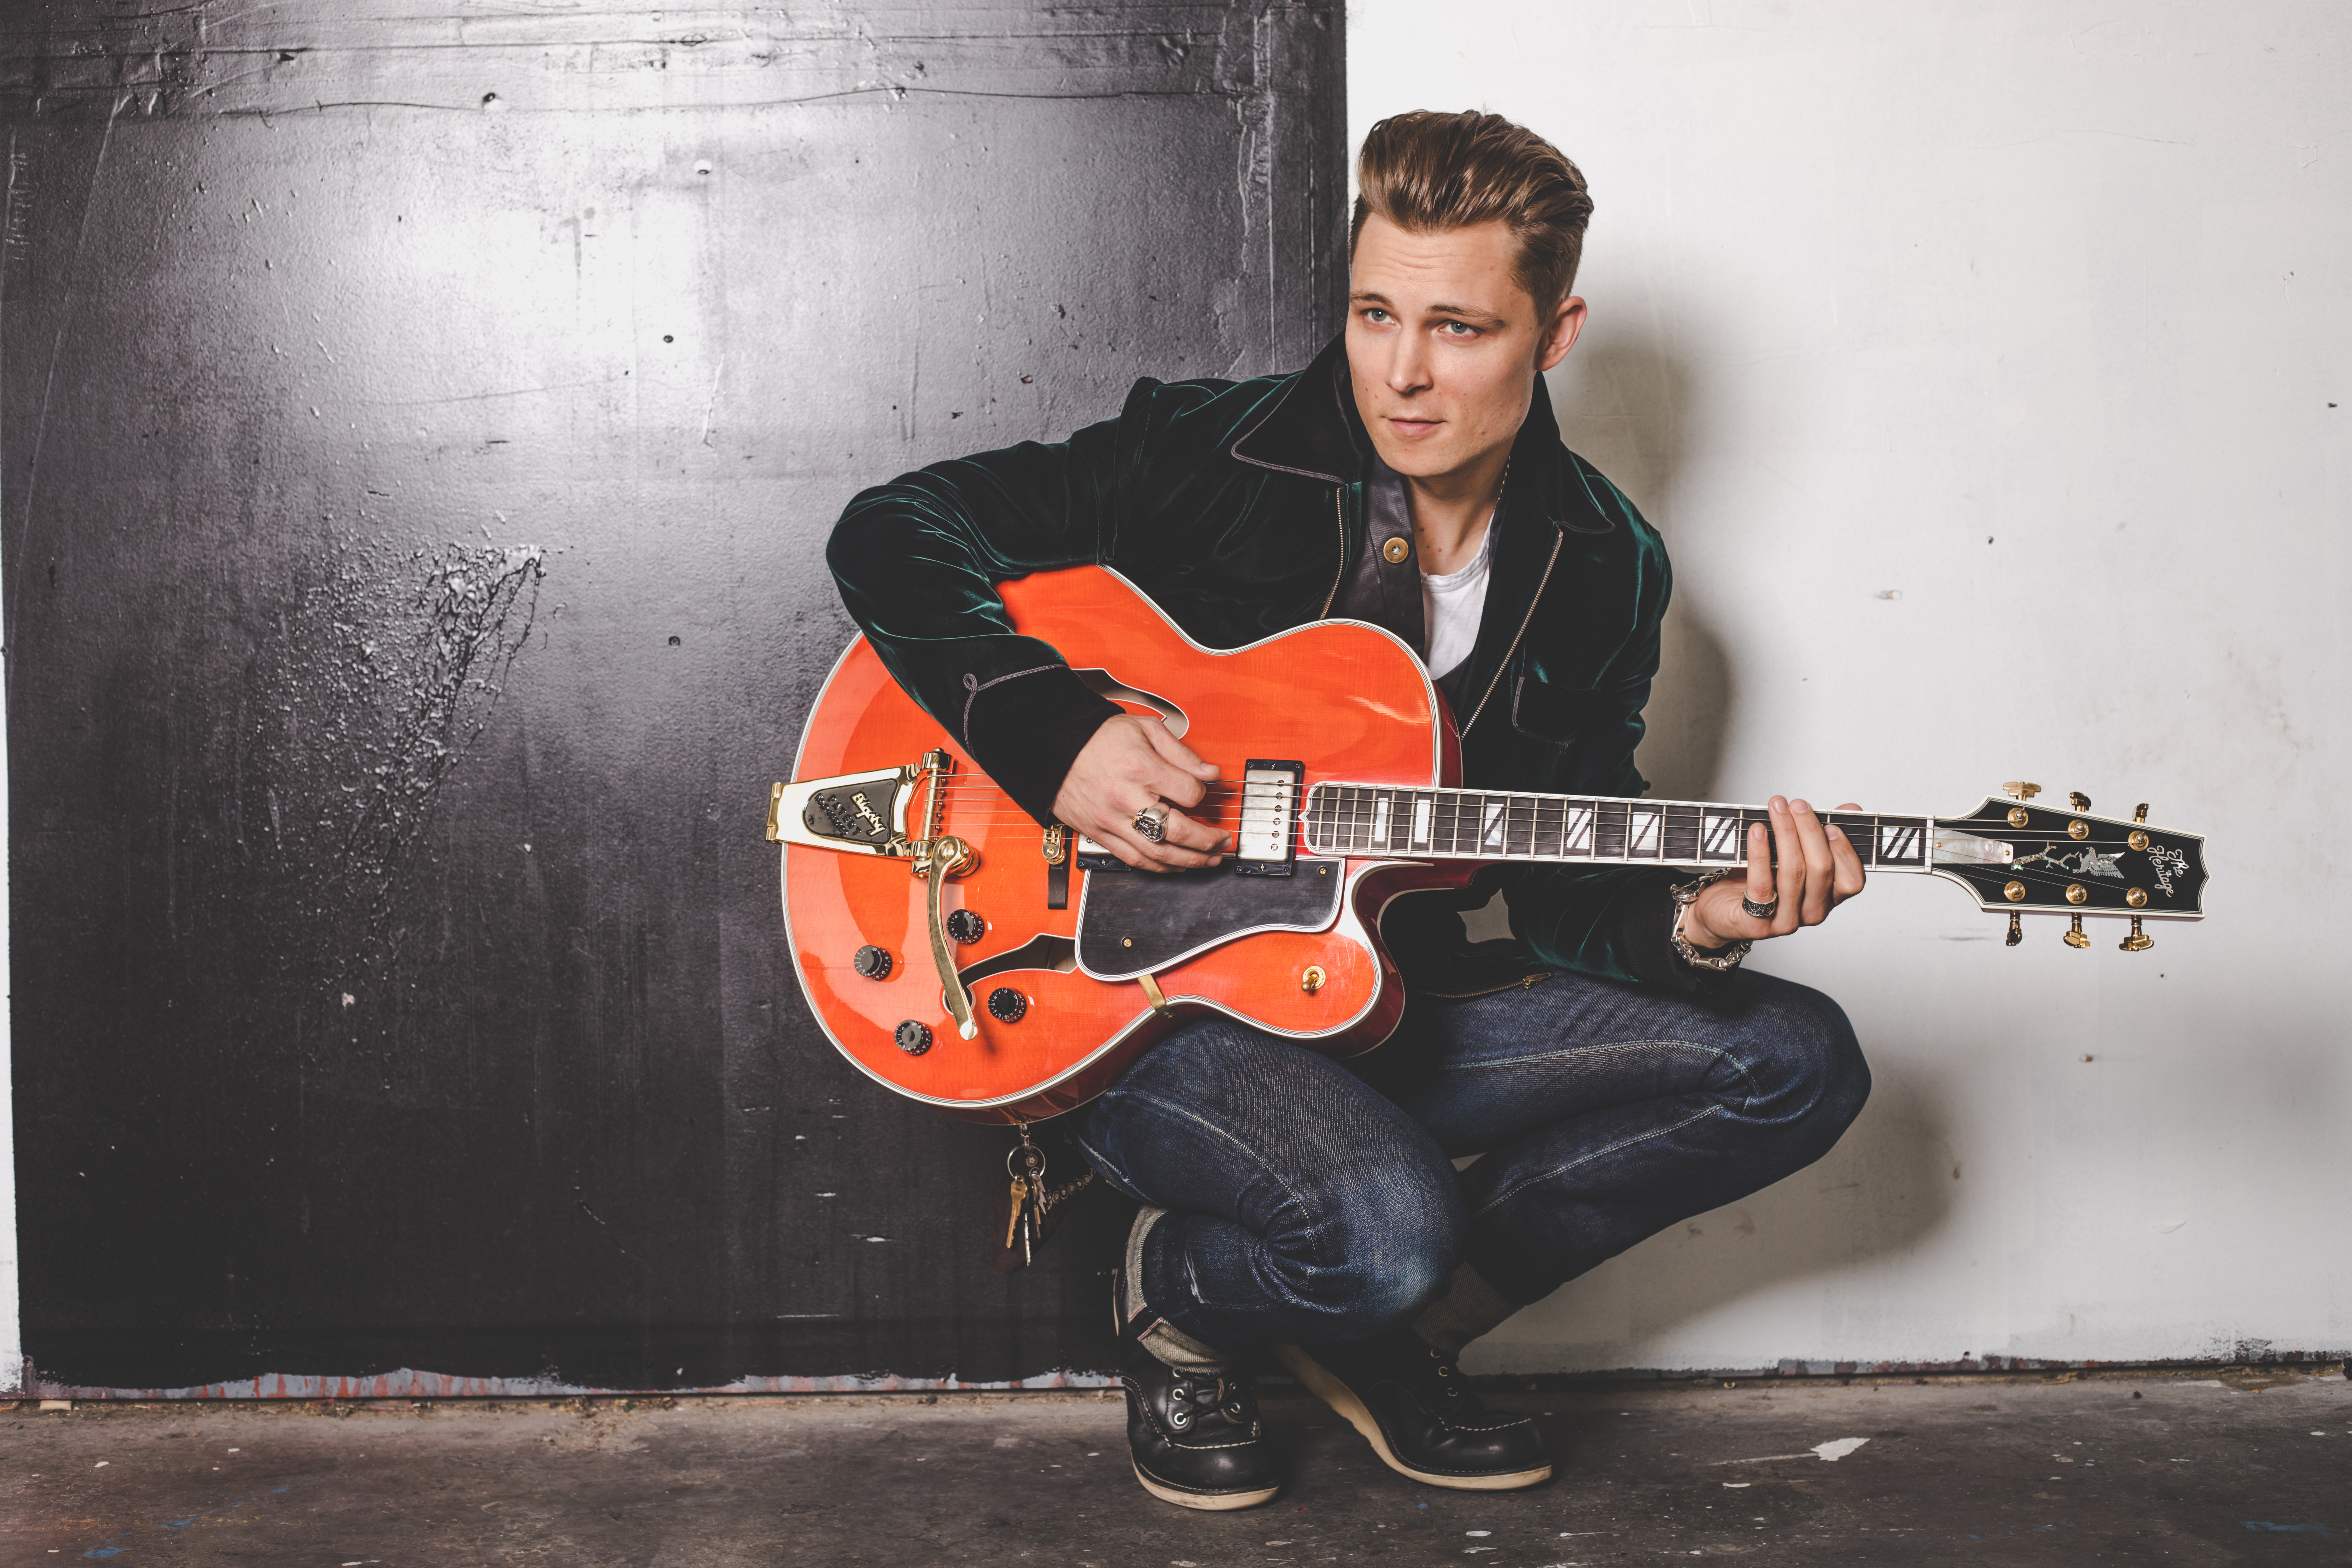 Michigan-Born Country Music Star Frankie Ballard to Perform Saturday, June 1 at the Chevrolet Detroit Grand Prix presented by Lear